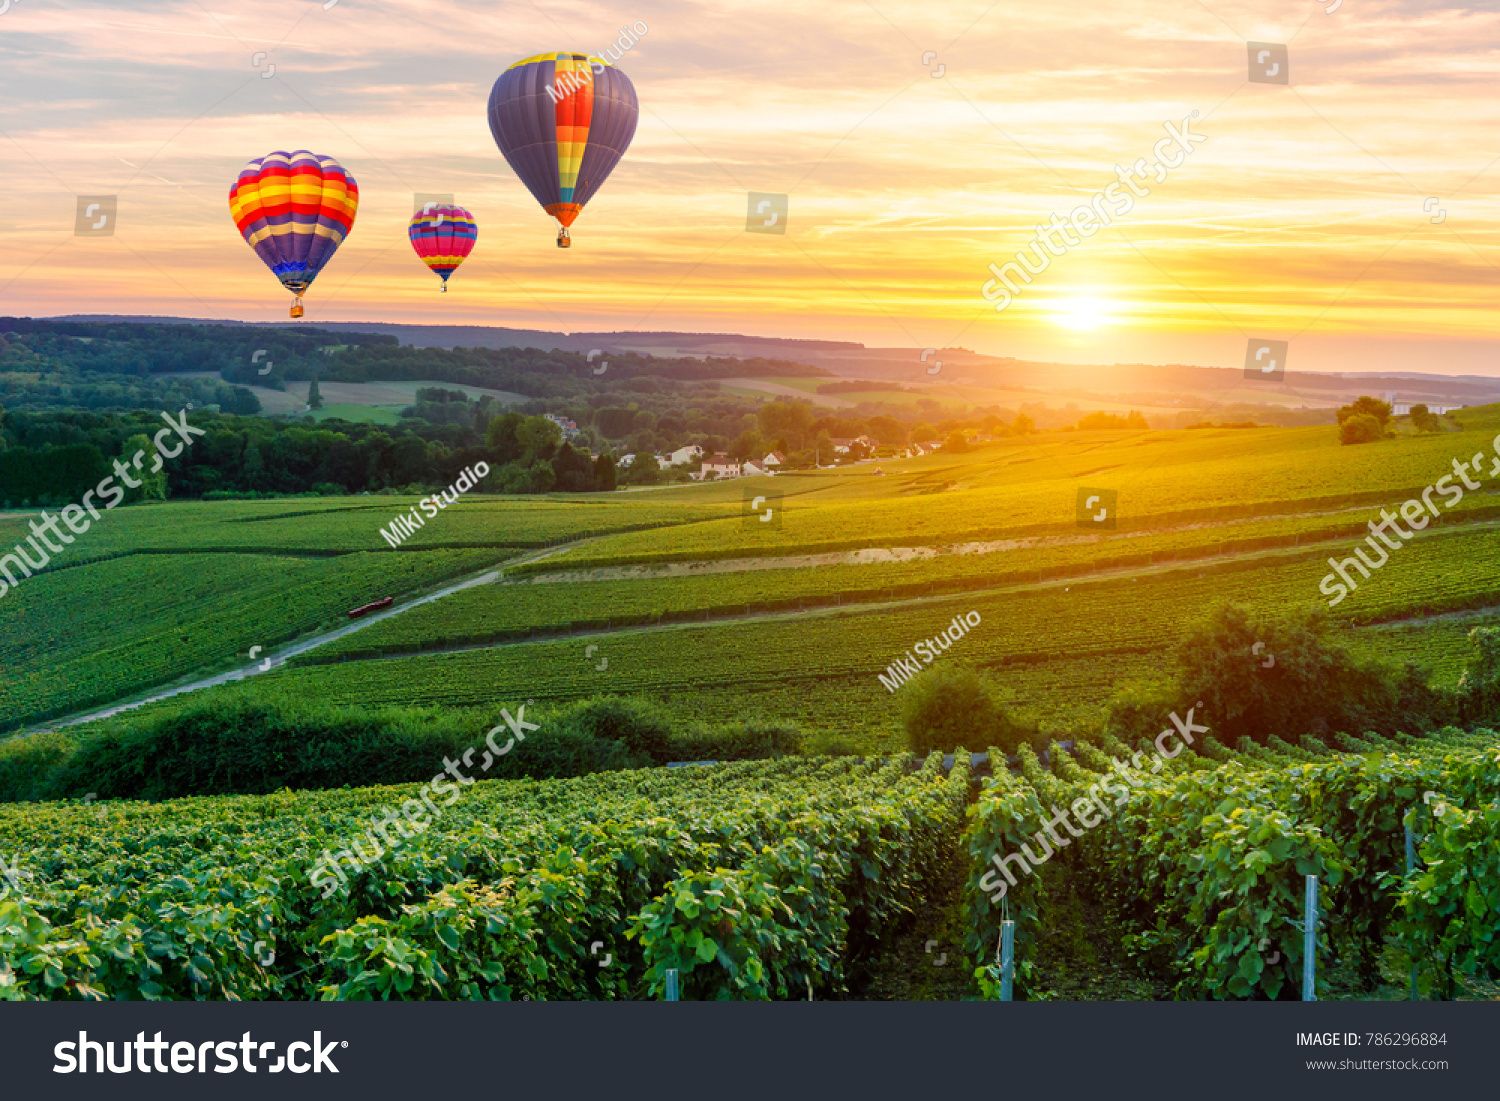 Colorful hot air balloons flying over champagne Vineyards at sunset montagne de Reims, France #786296884 - 123PhotoFree.com